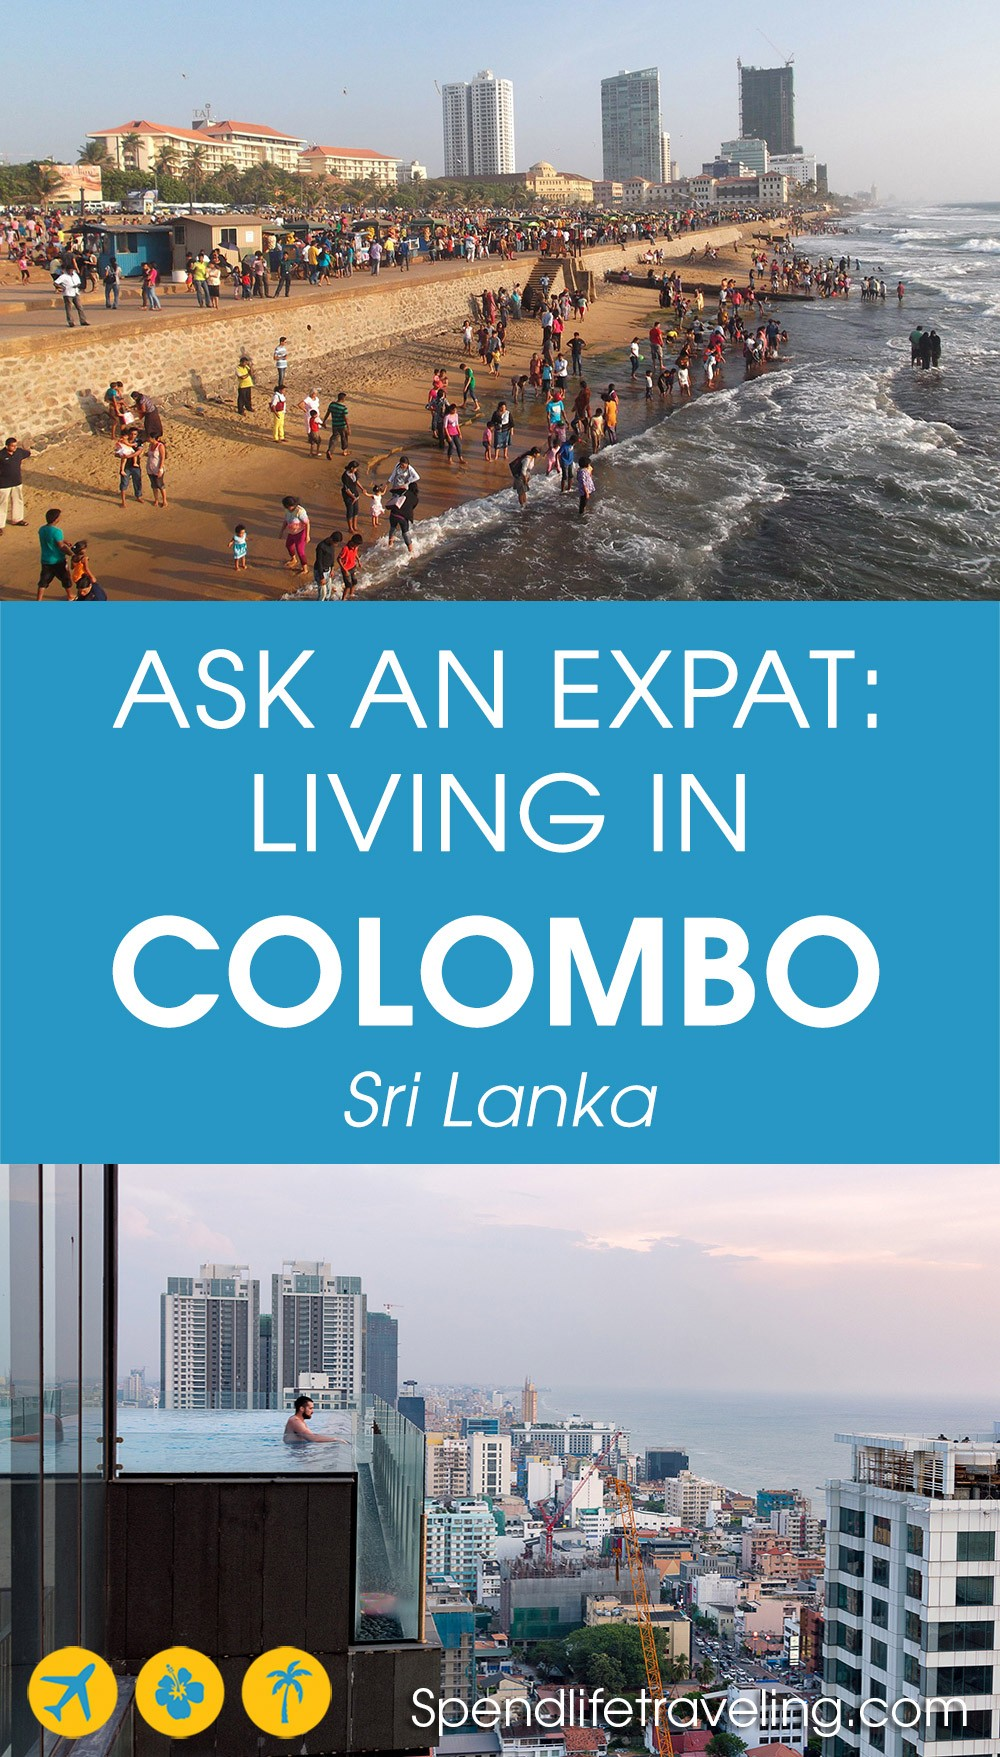 Interview about moving to and living in Colombo, Sri Lanka